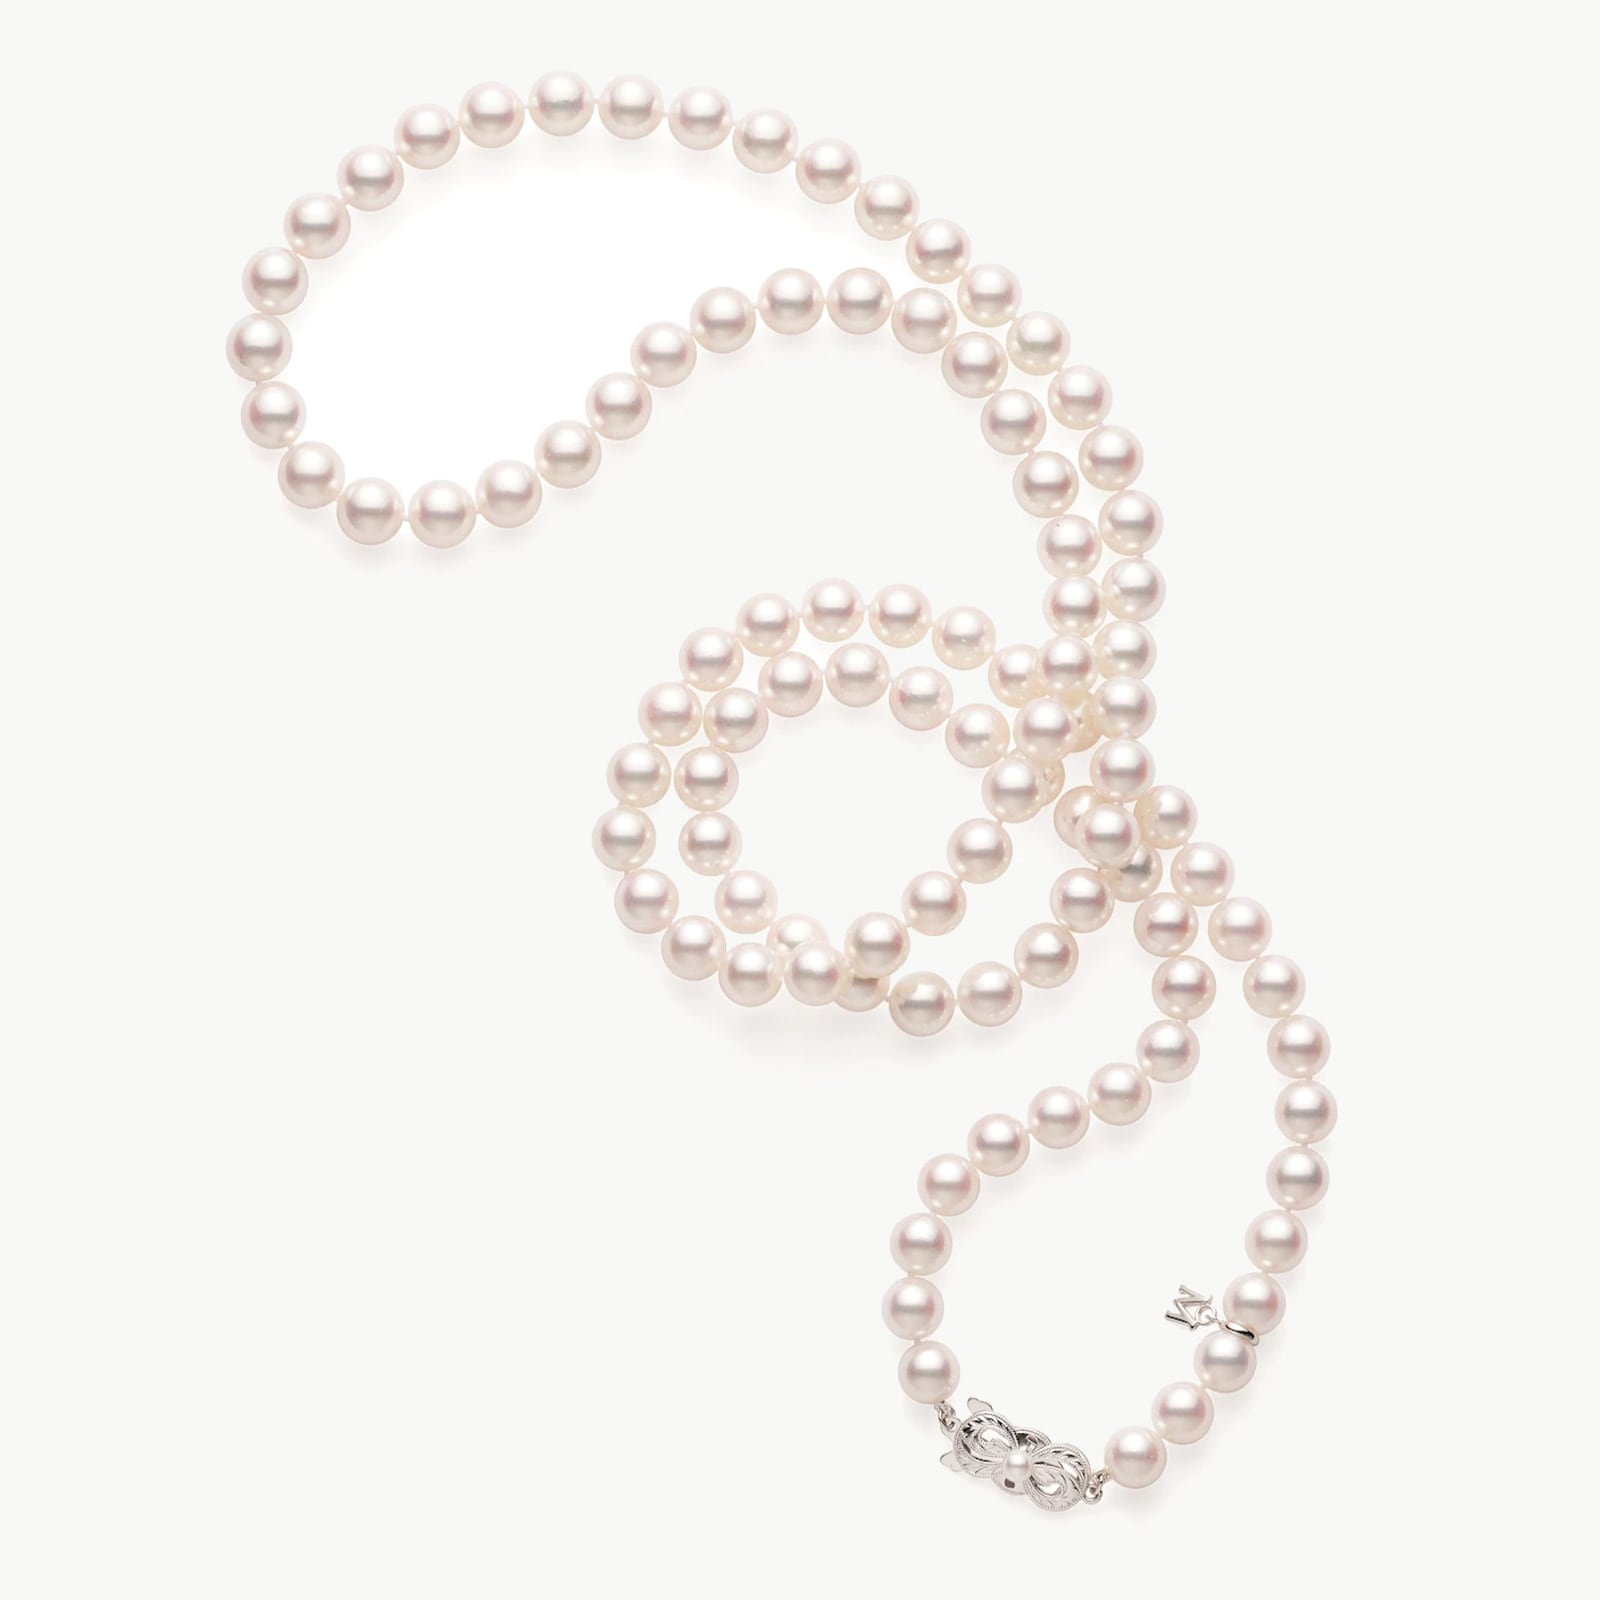 Akoya Cultured Pearl 32inch Necklace